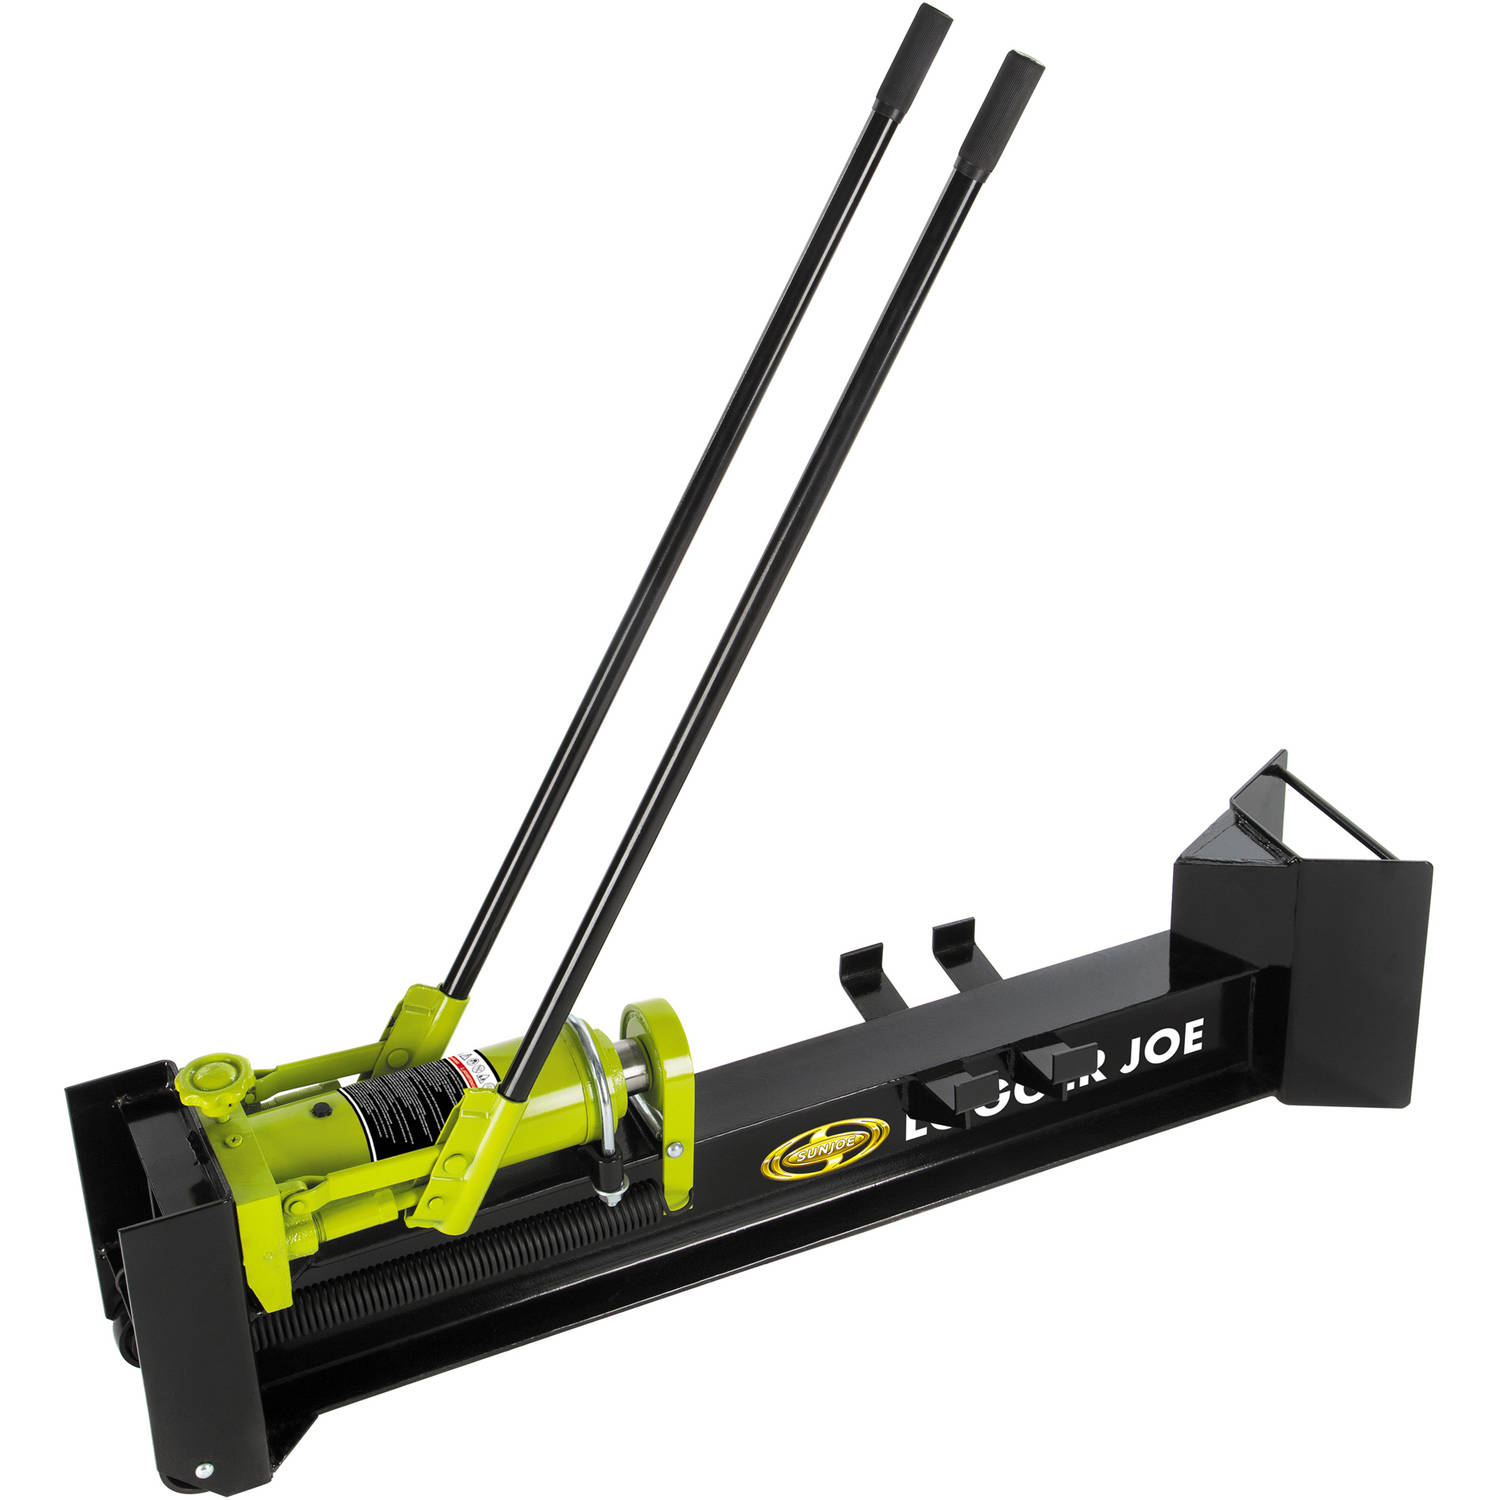 Sun Joe Logger Joe 10-Ton Hydraulic Log Splitter – LJ10M by Snow Joe / Sun Joe